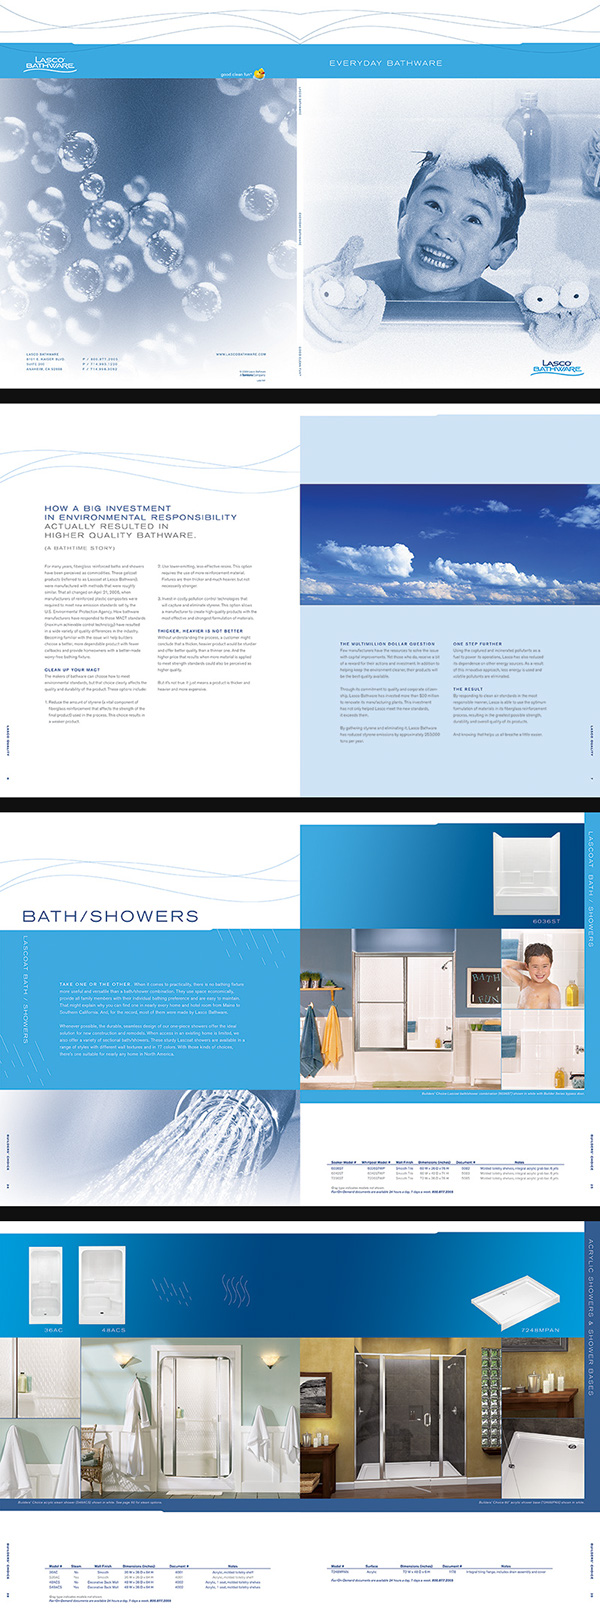 Contemporary Lasco Tubs And Showers Elaboration - Bathtub Design ...